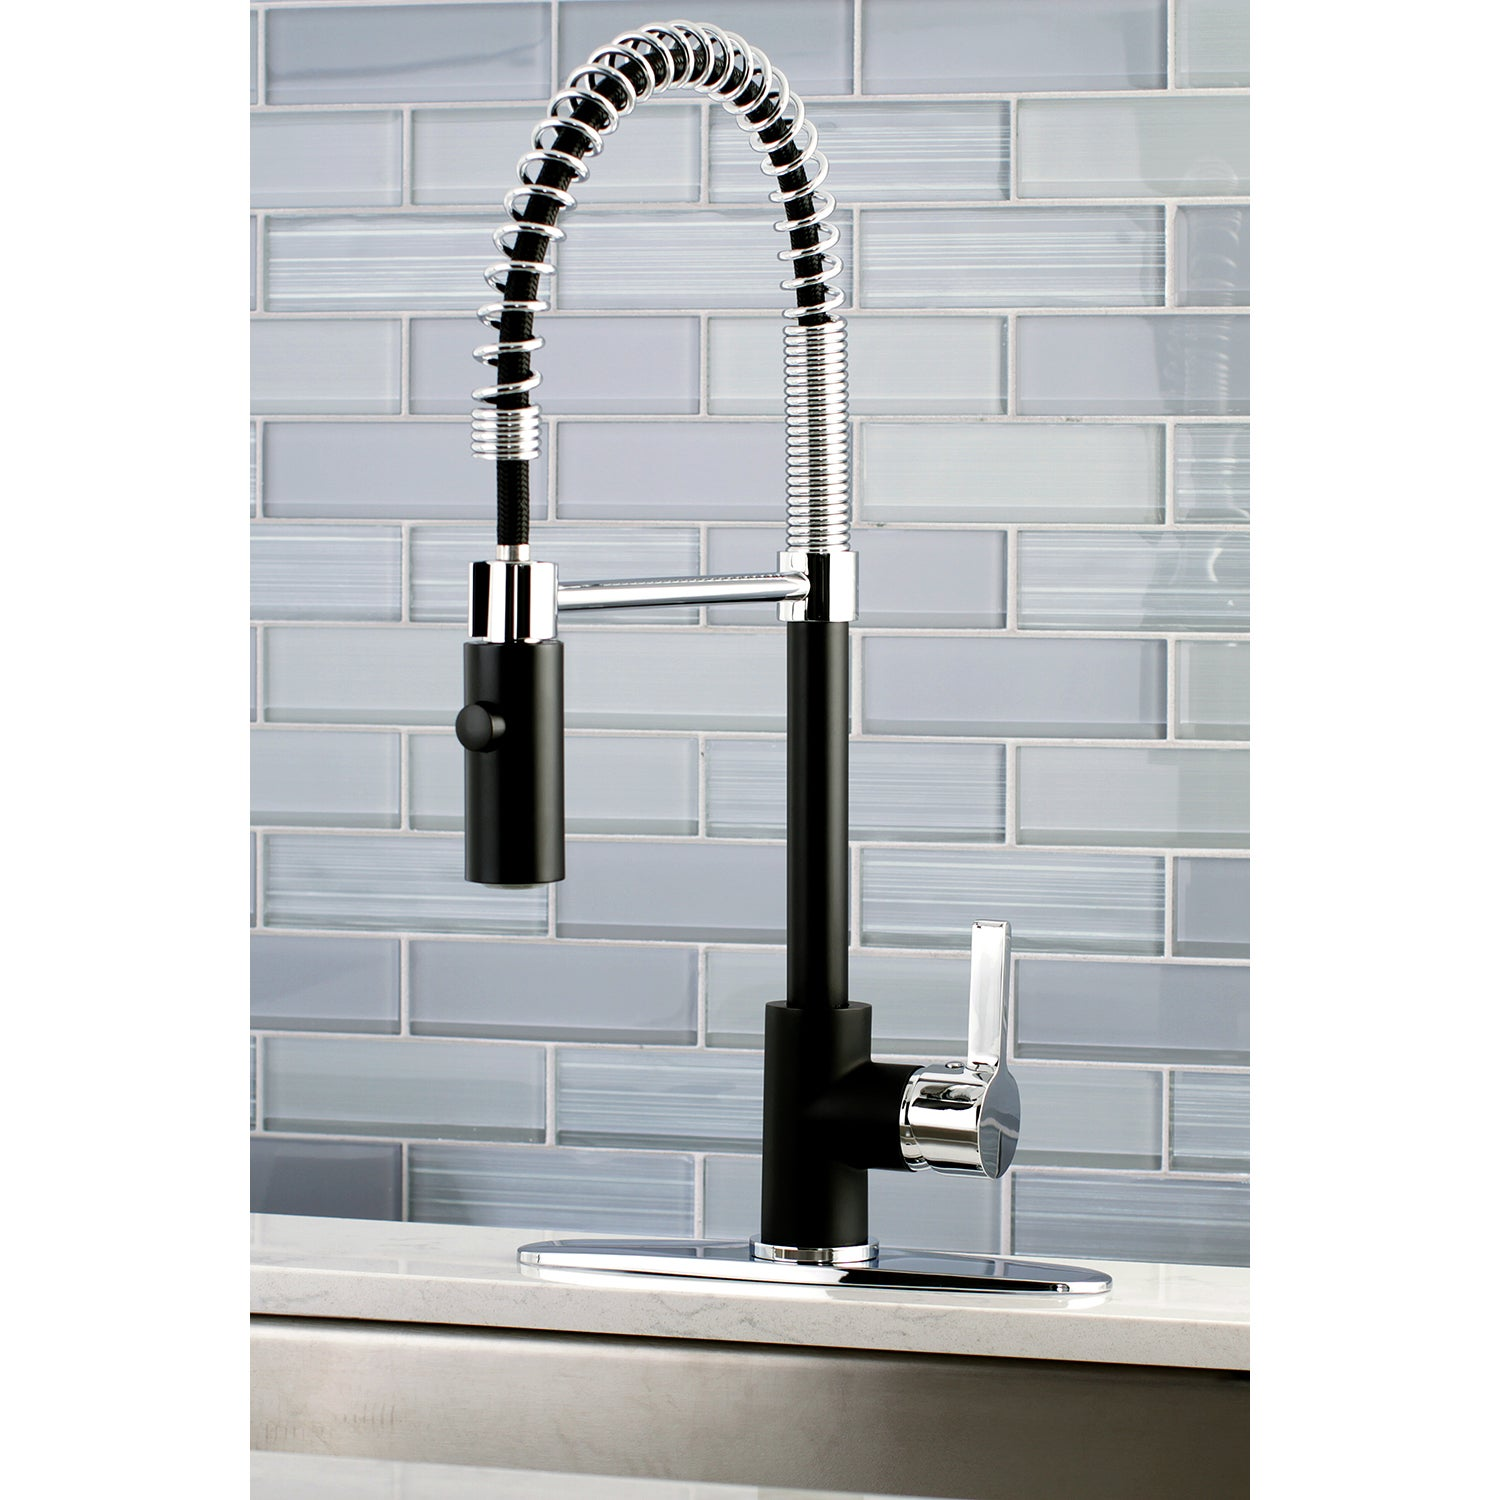 brushed kitchen faucet sink pull down finish nickel out